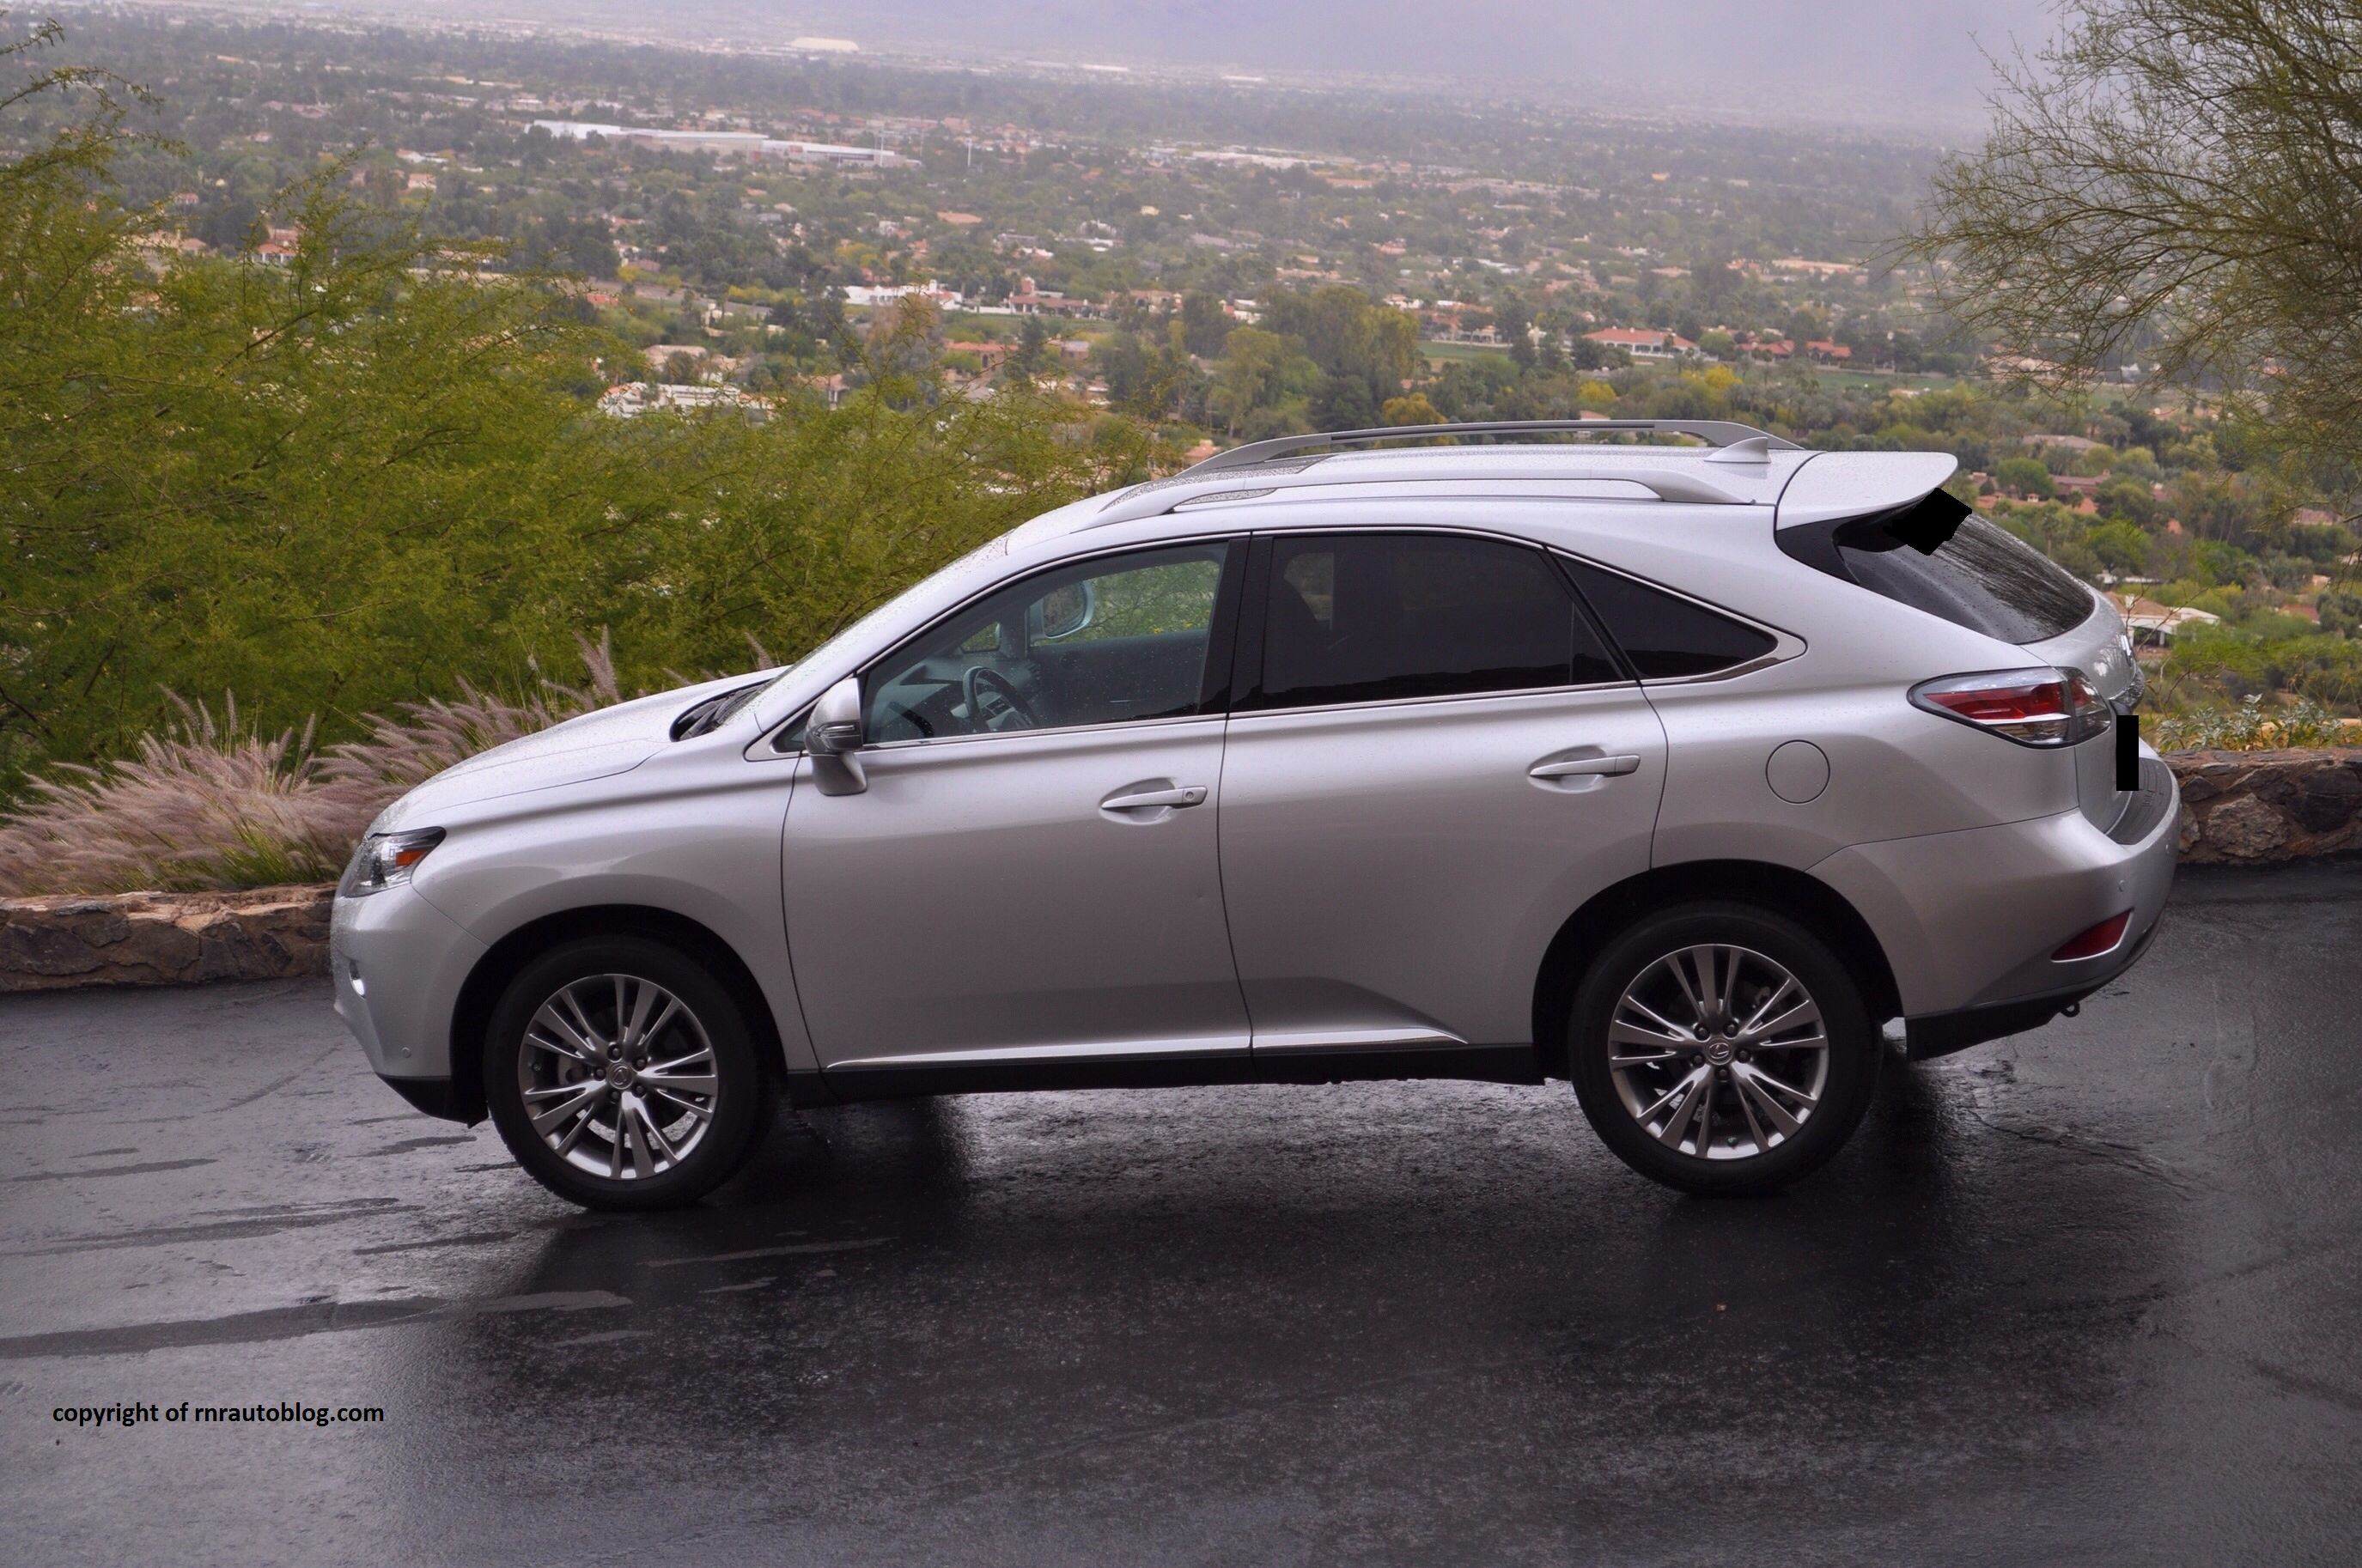 2014 Lexus RX350 Review